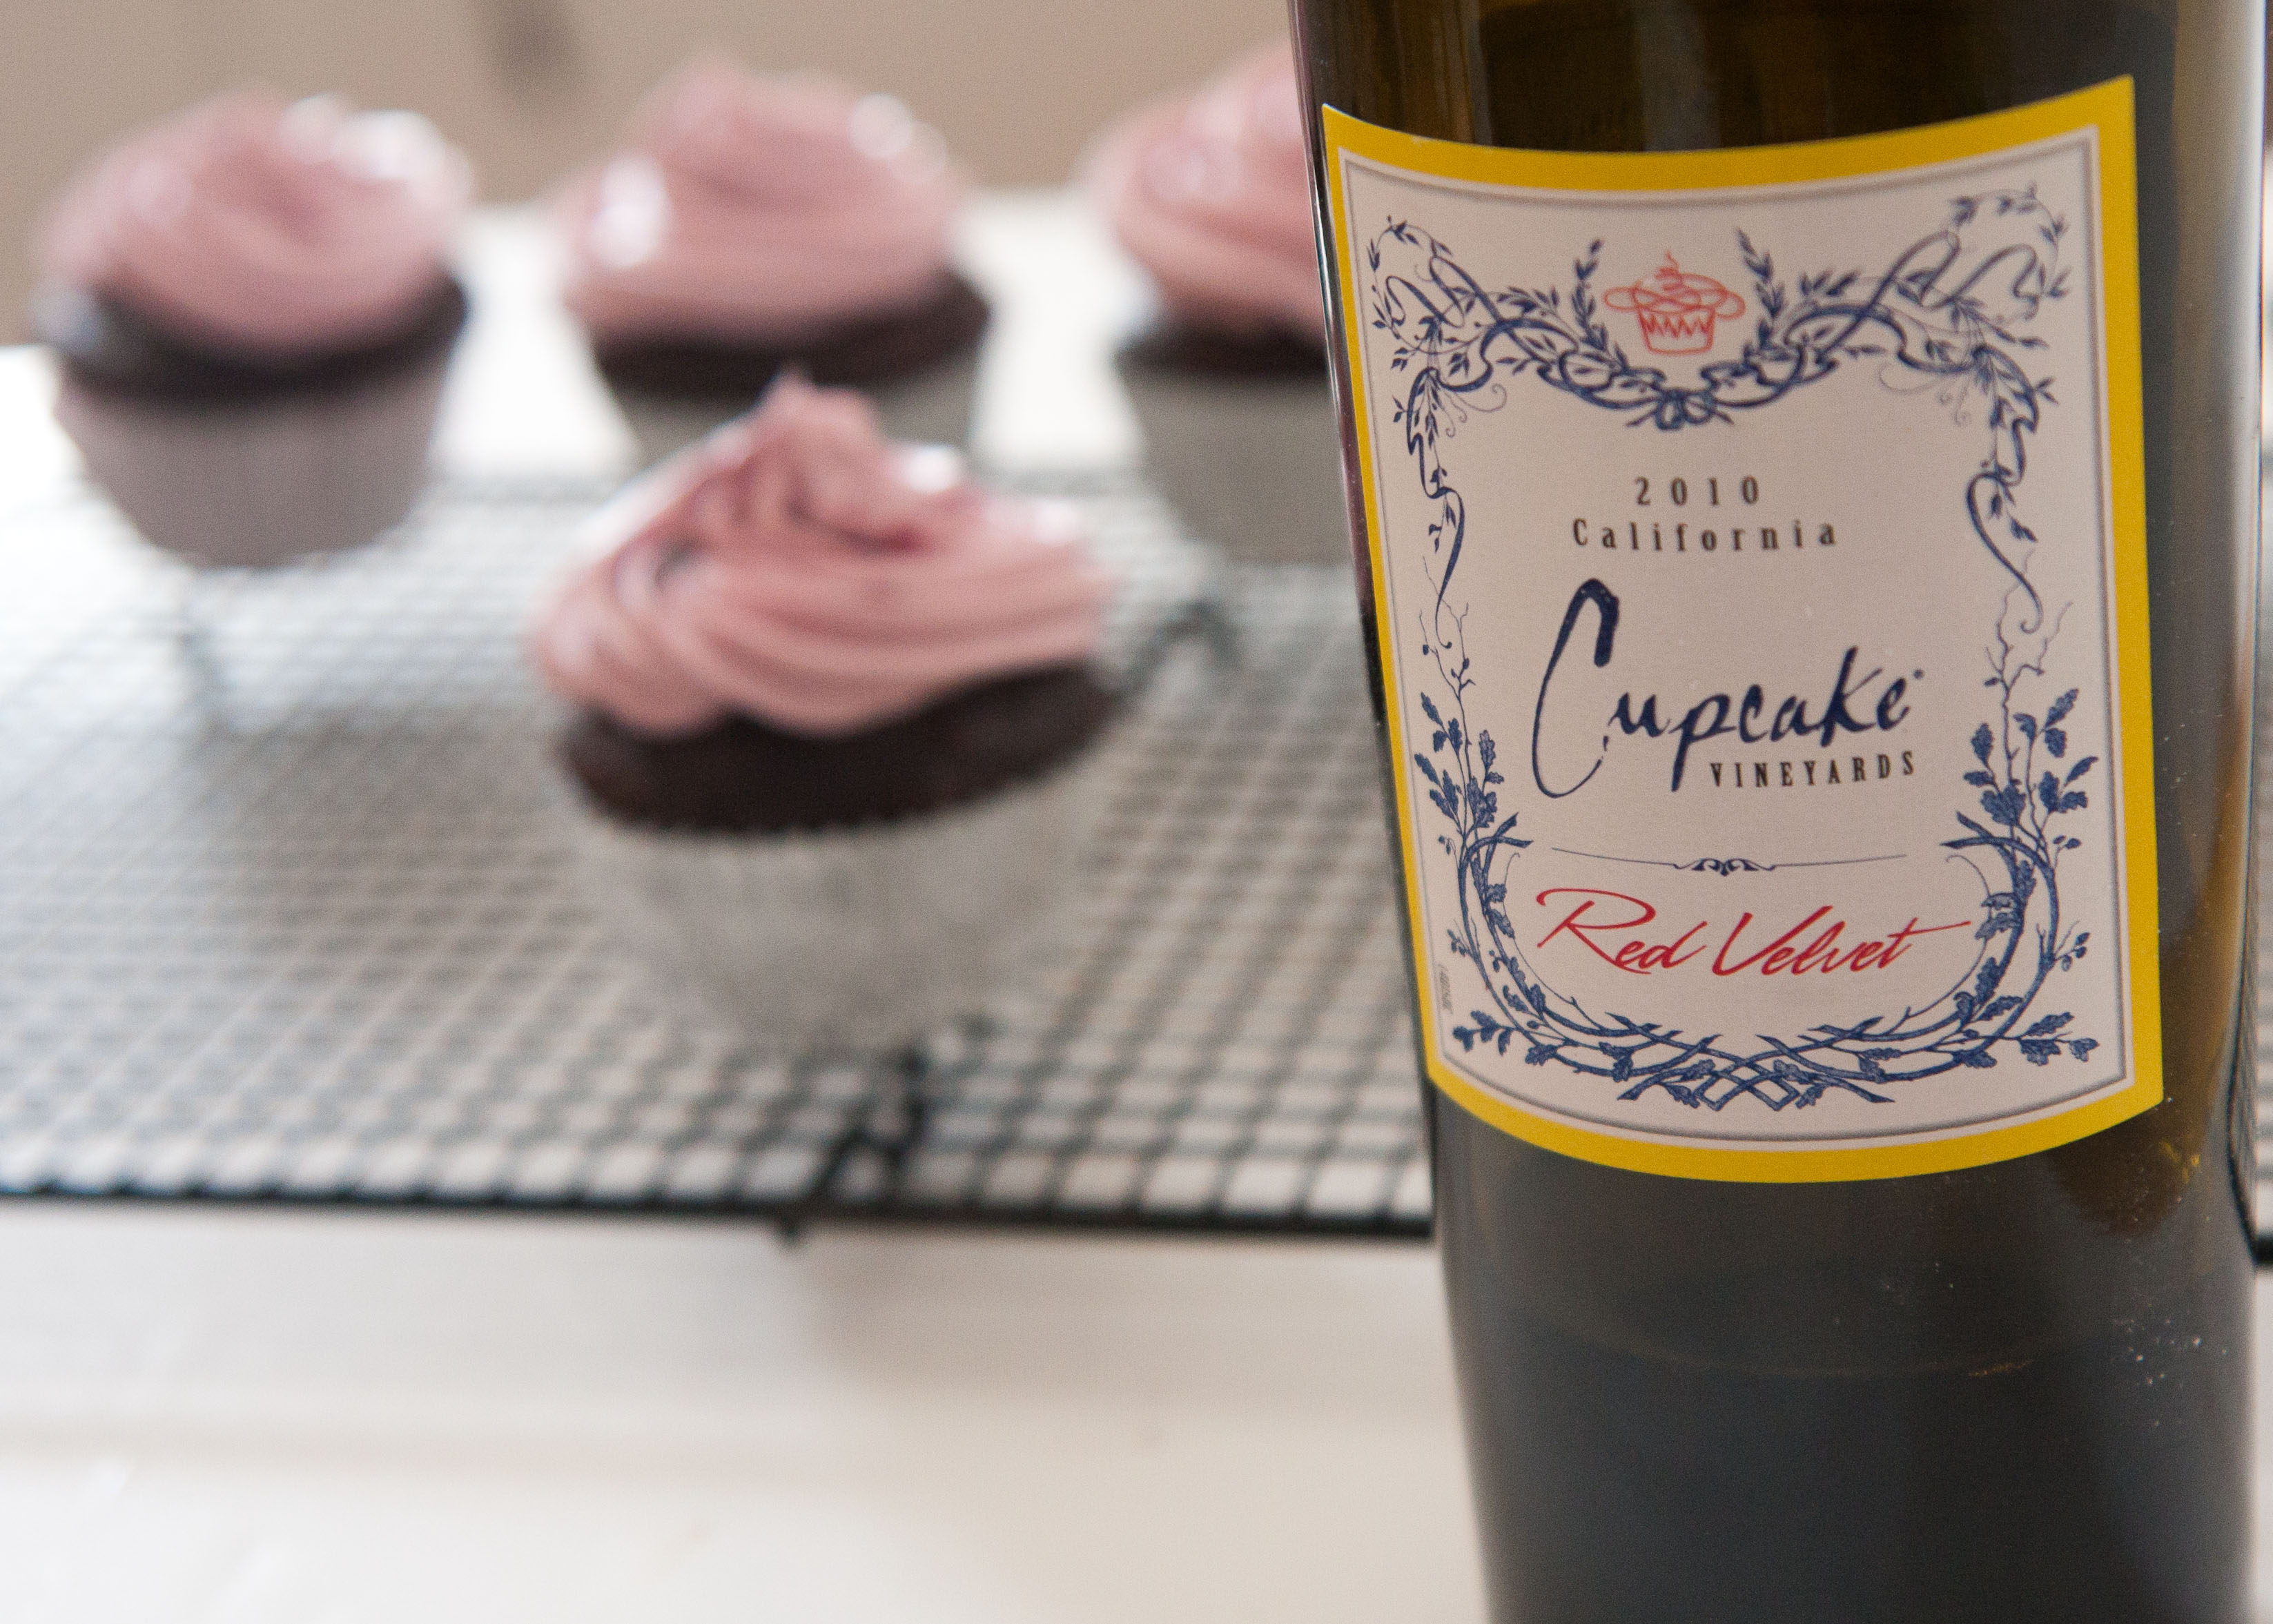 These Cupcakes combine the love of chocolate & wine.